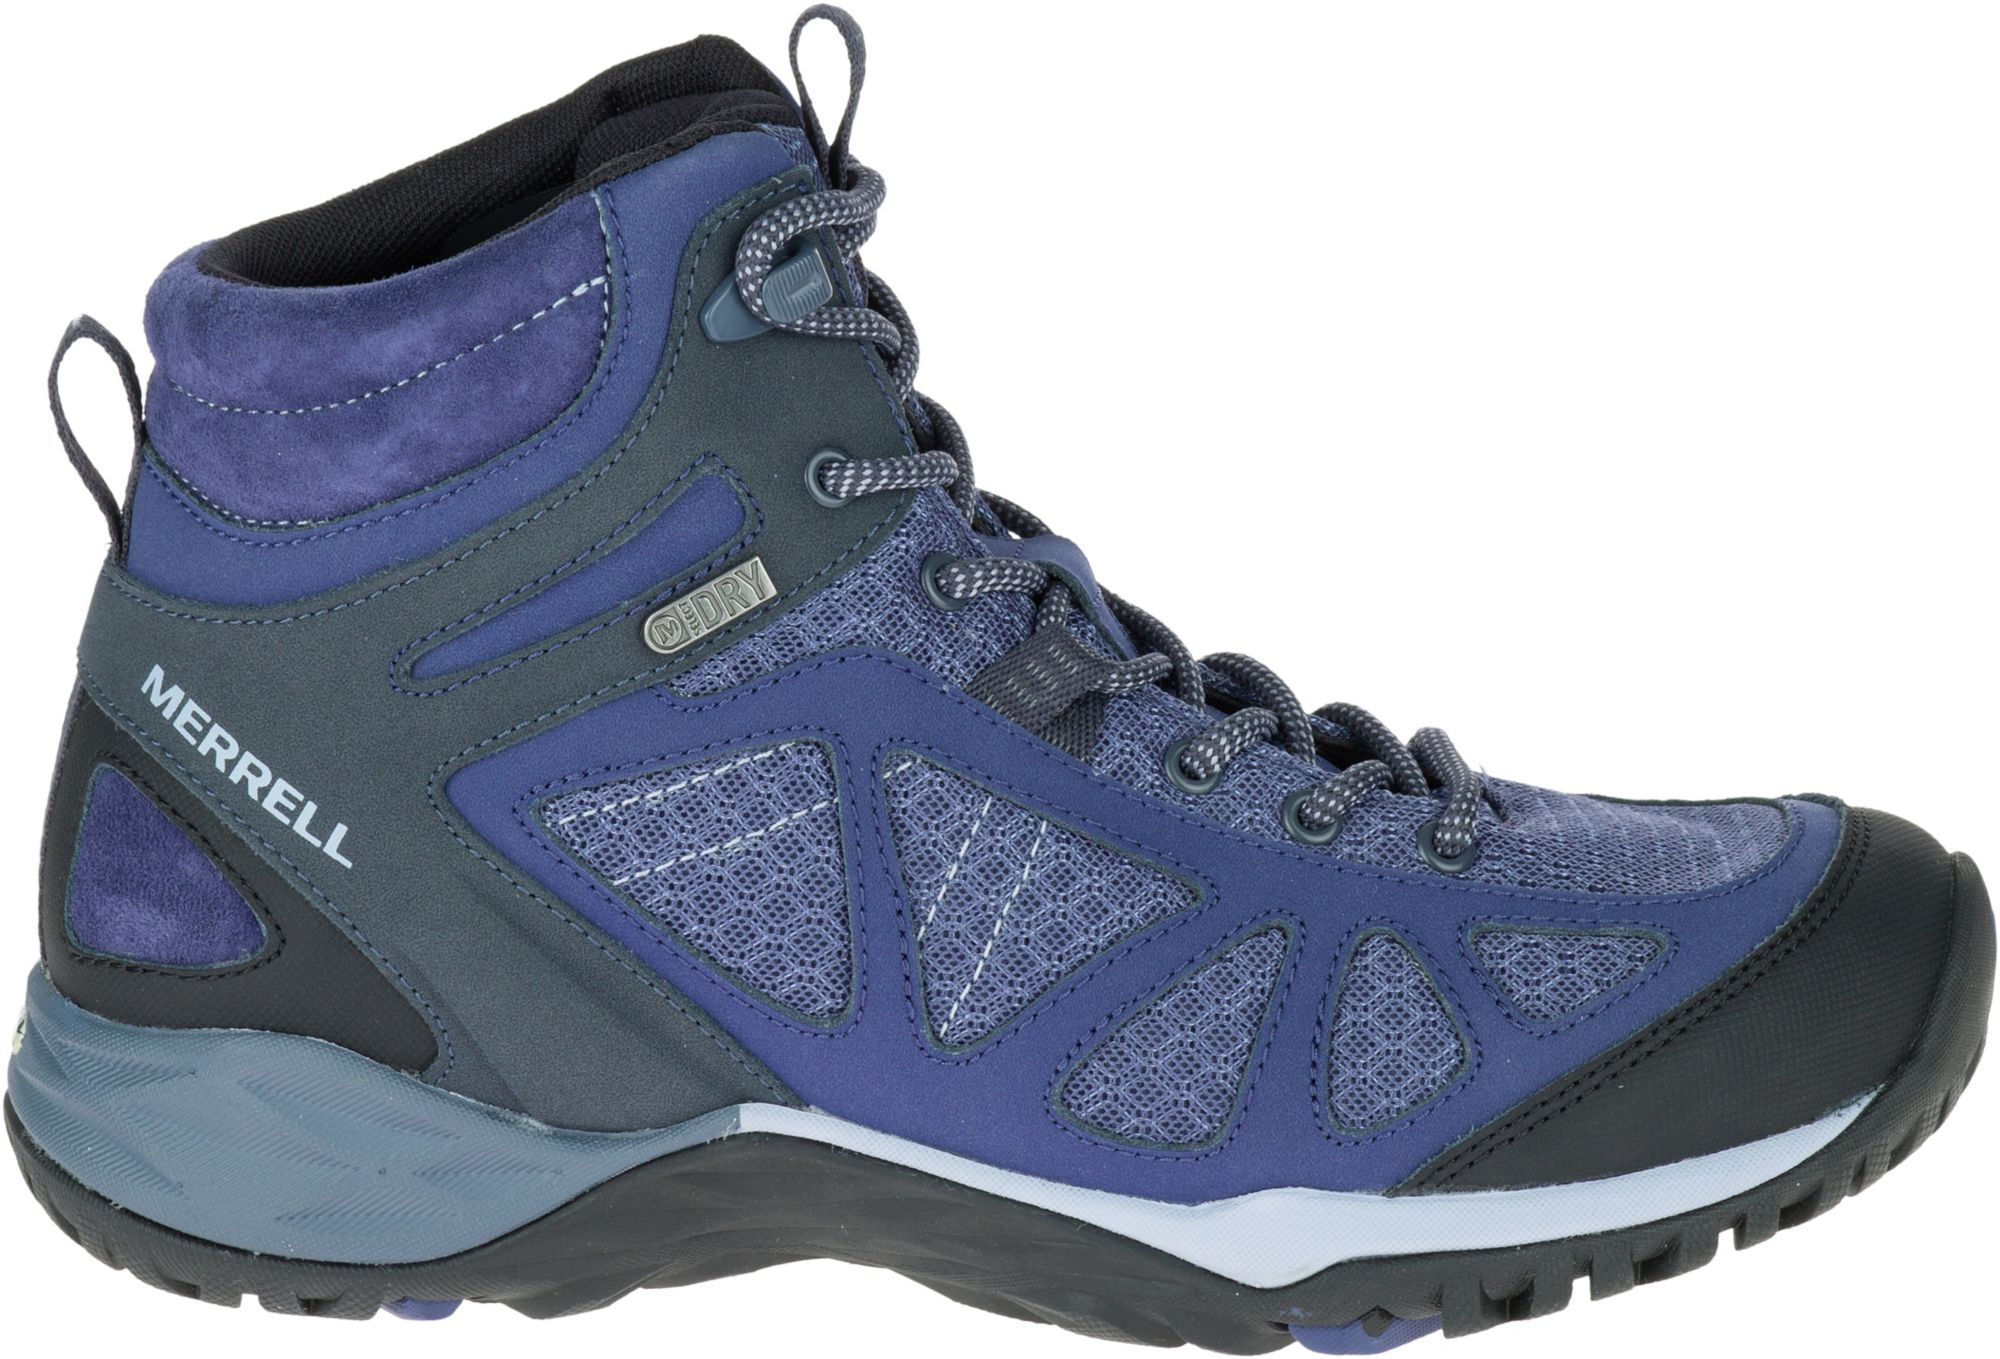 Merrell Leather Epiction Waterproof Hiking Boots Shoes